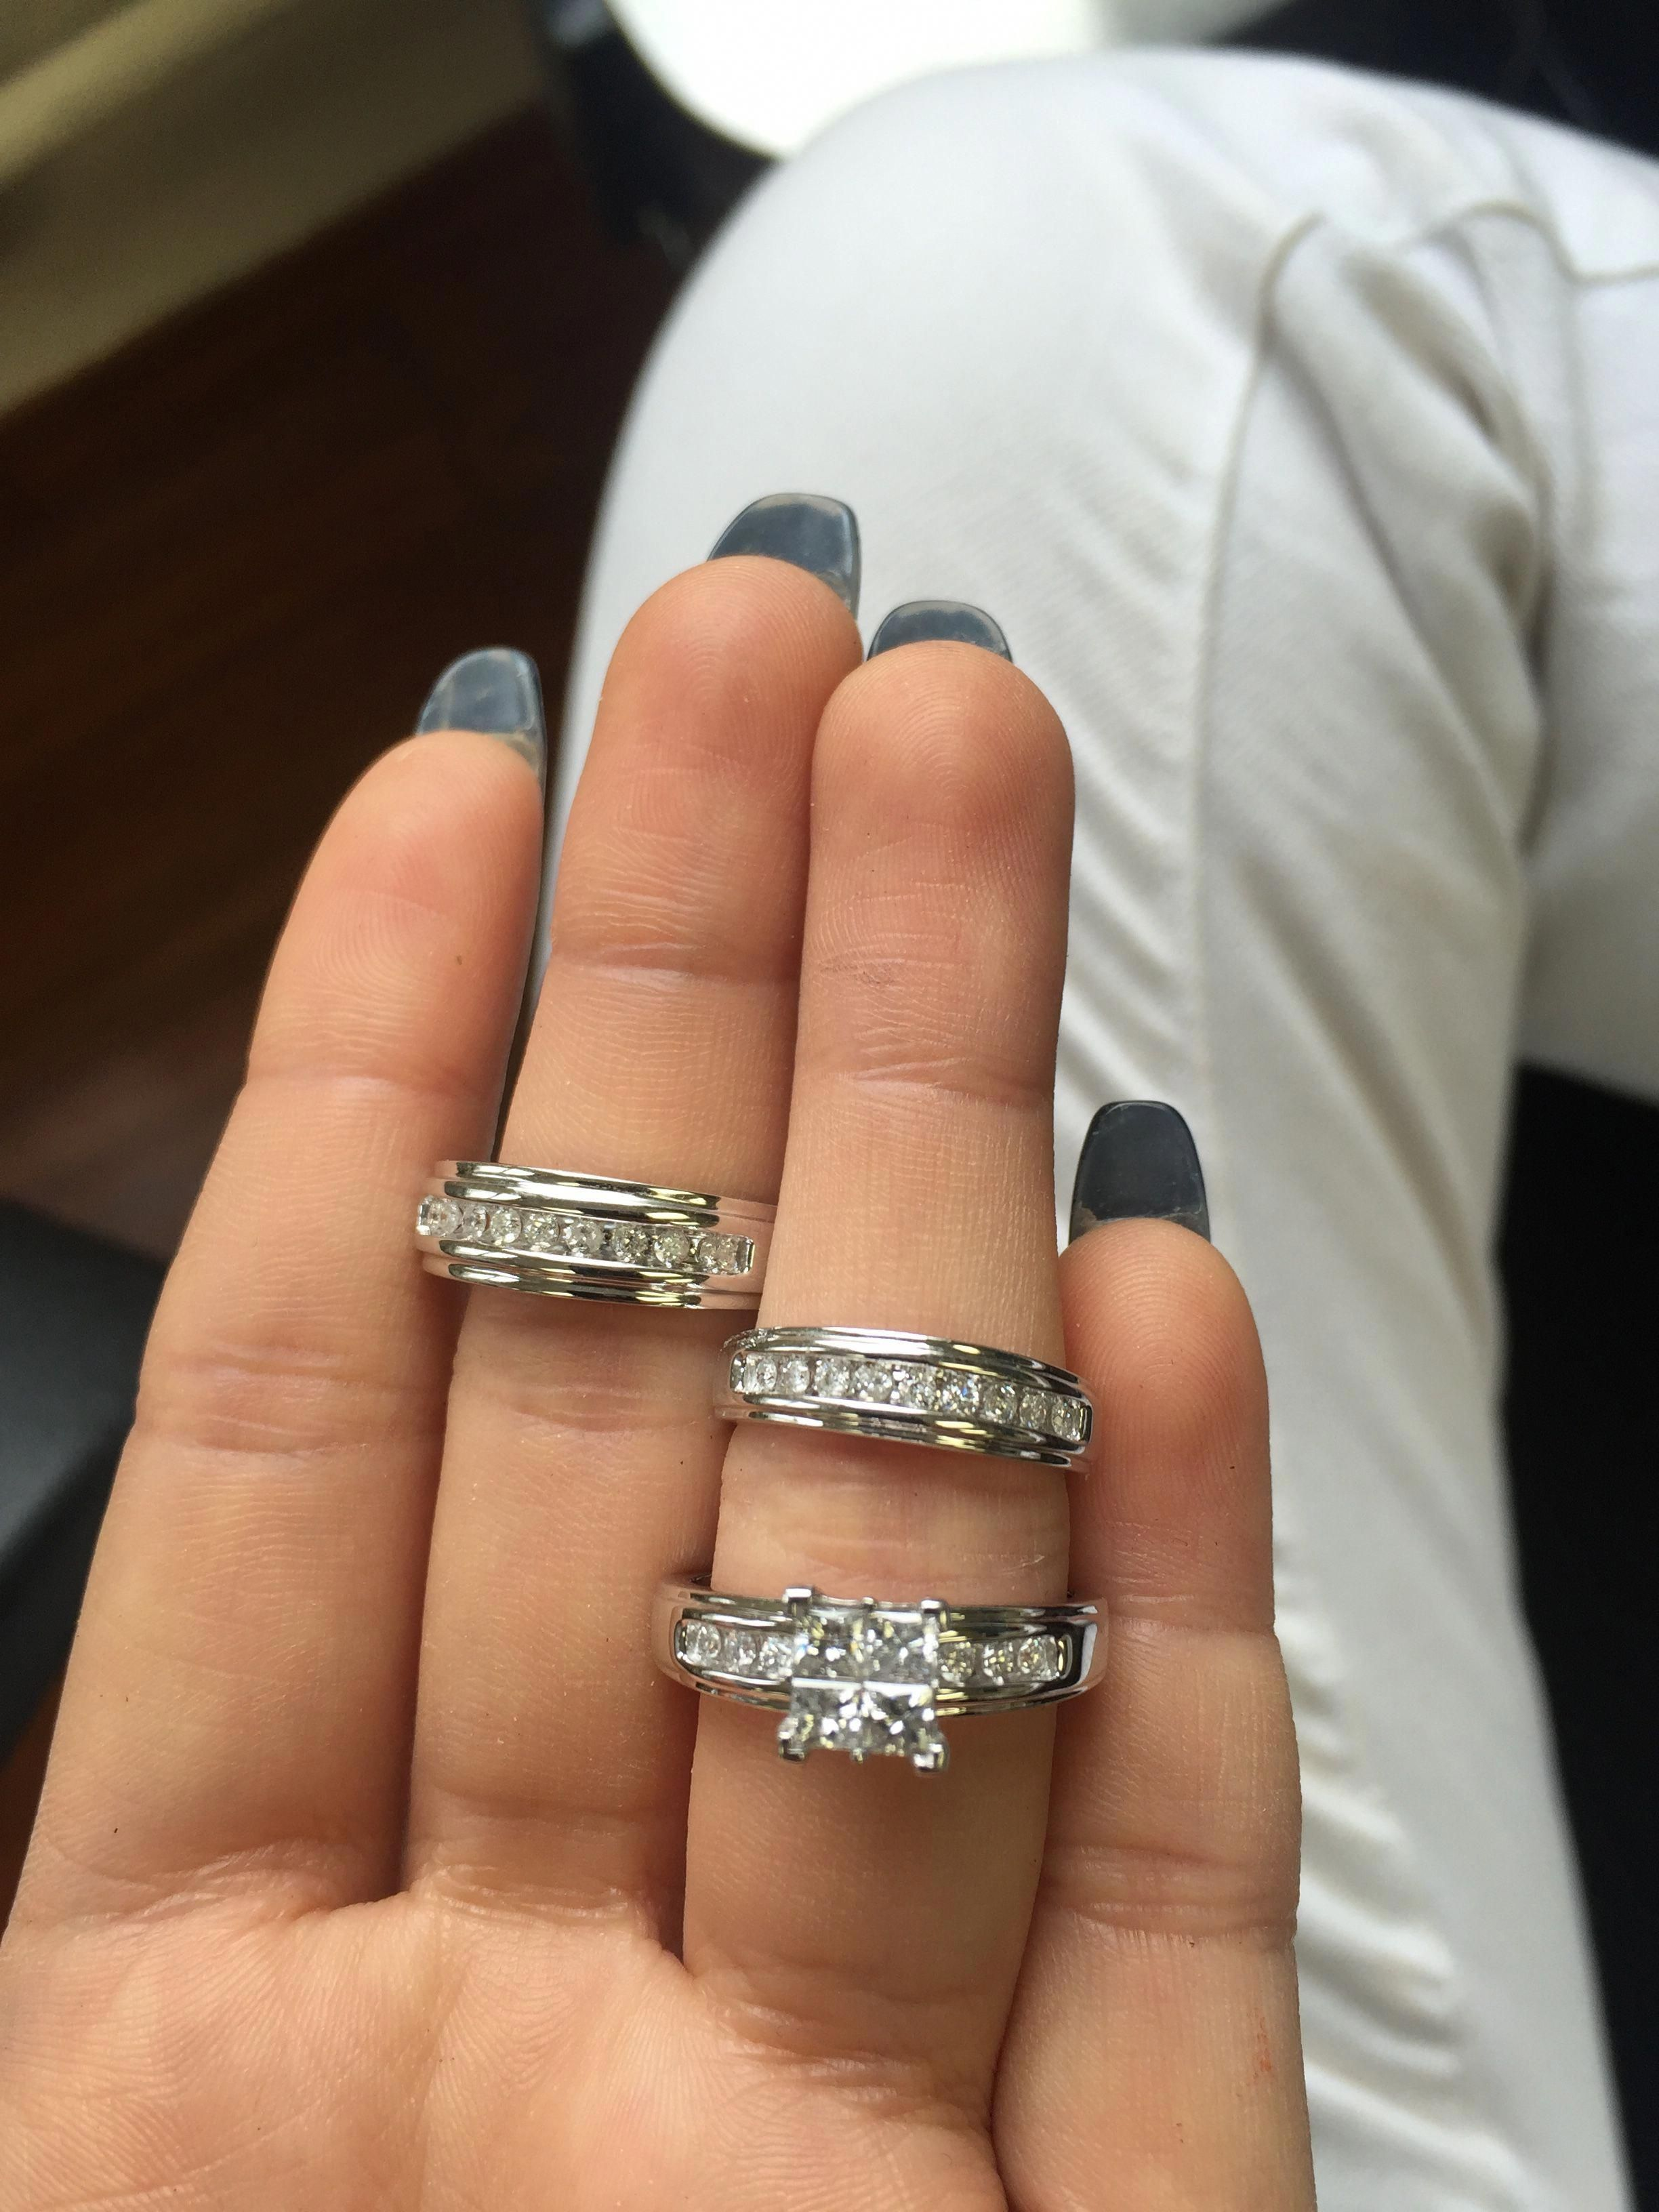 Rings on Hand Trio Ring Set BT515W (Engagement Ring